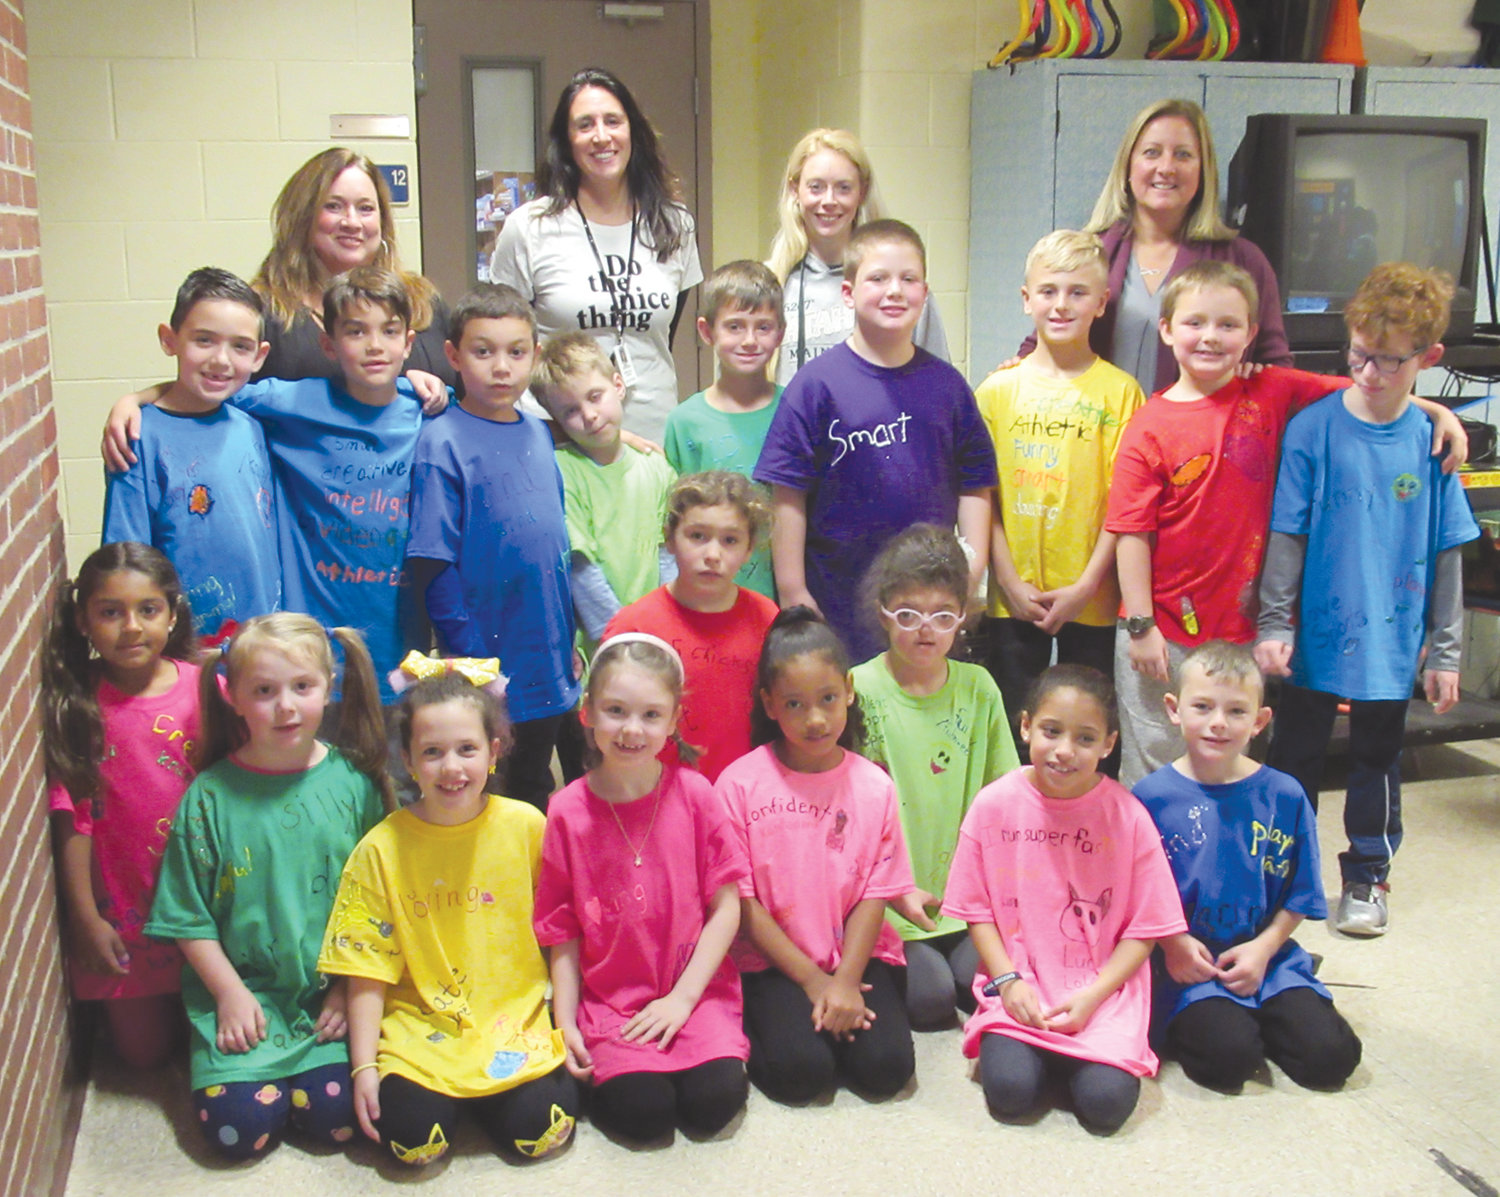 POPULAR PAINTERS: These are the Winsor Hill Elementary School students who painted special slogans on their T-shirts during recent art enrichment program. They're backed by teachers Kerri Yekelchik, Dina Needham, Kim Marshall and Susan Parillo.